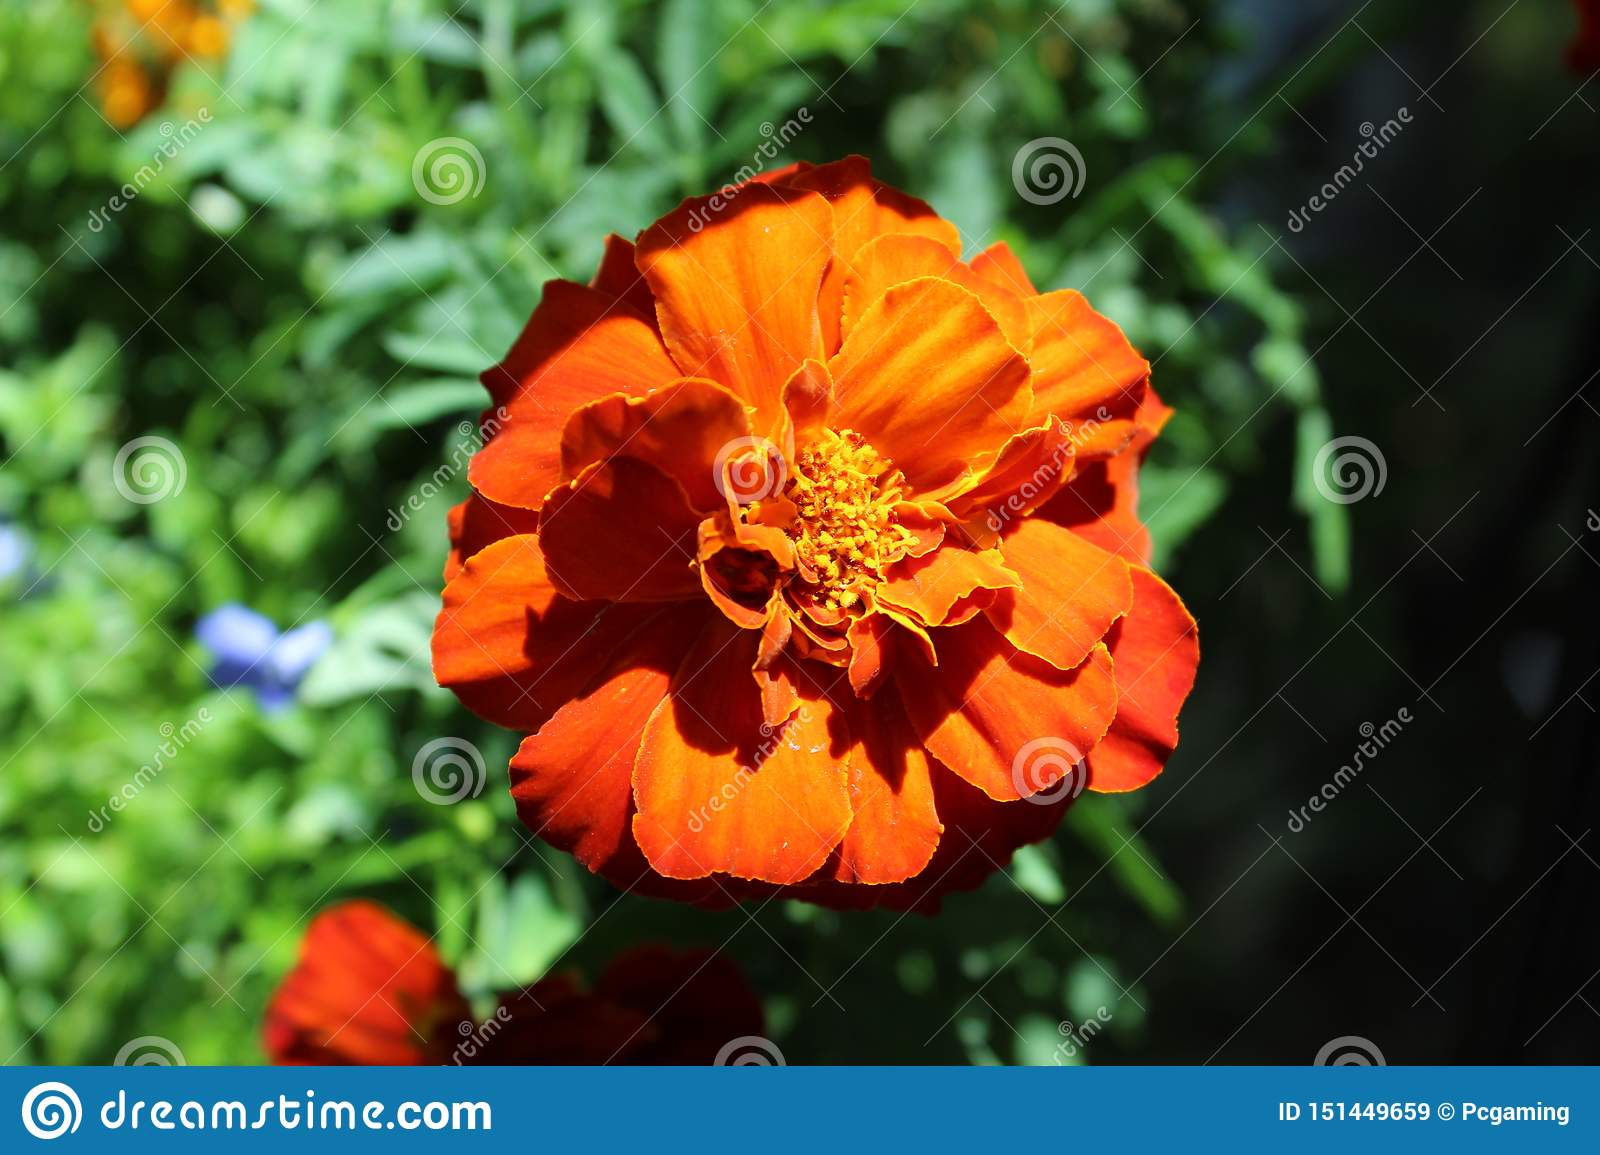 French marigold clse up shaded